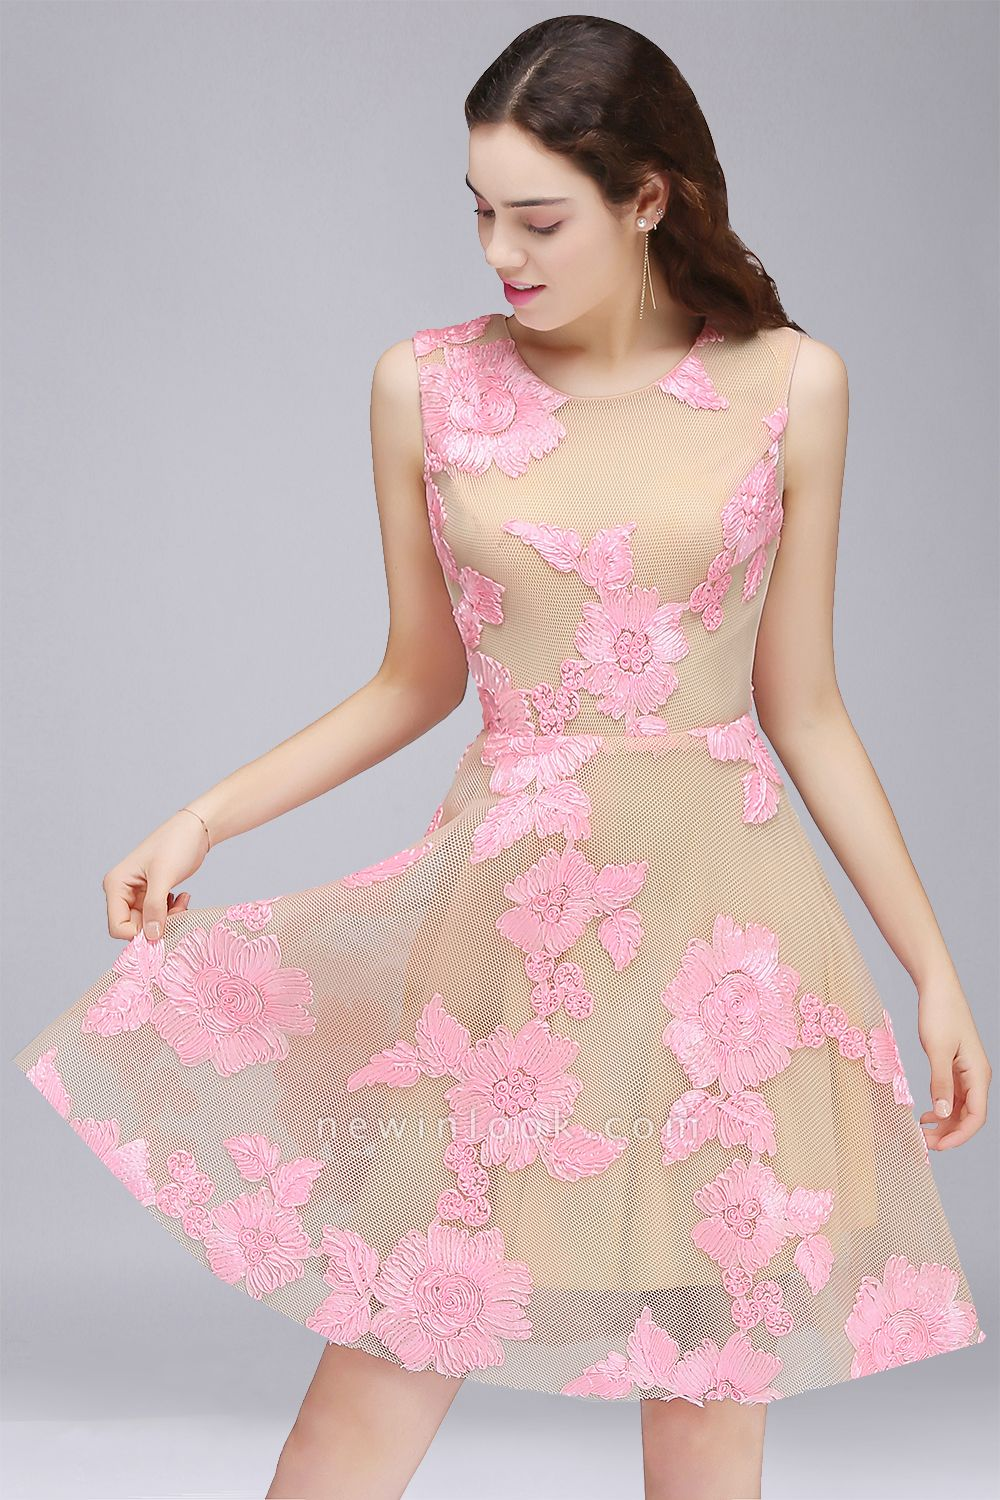 CORDELIA | Princess Knee-length Tulle Quince Dama Dress with Pink Lace Appliques